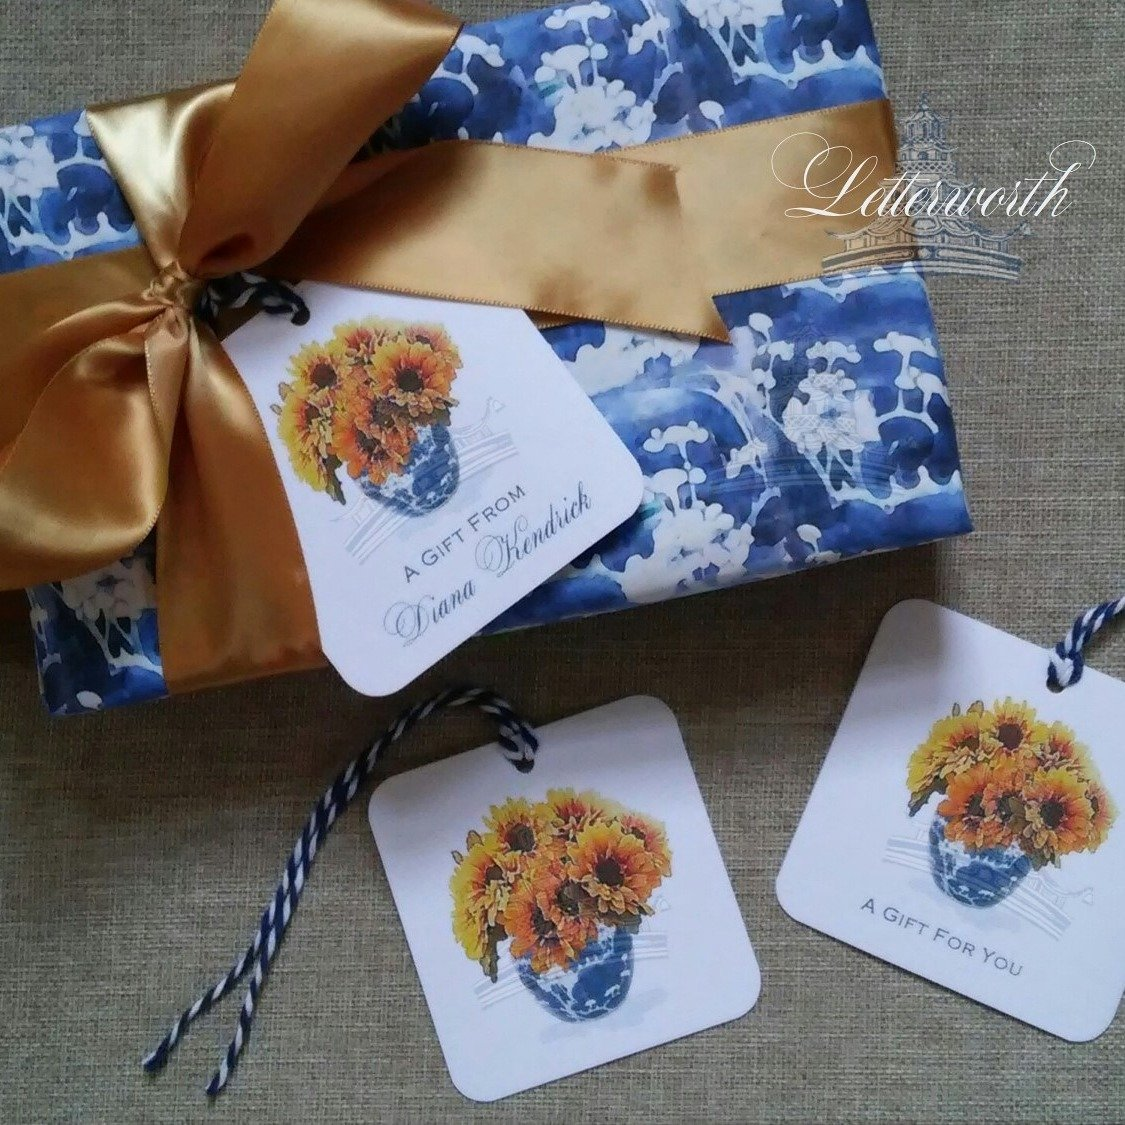 Sunflowers in Blue and White Porcelain Vase Chinoiserie Watercolor Gift Tags by Letterworth (Set of 12)